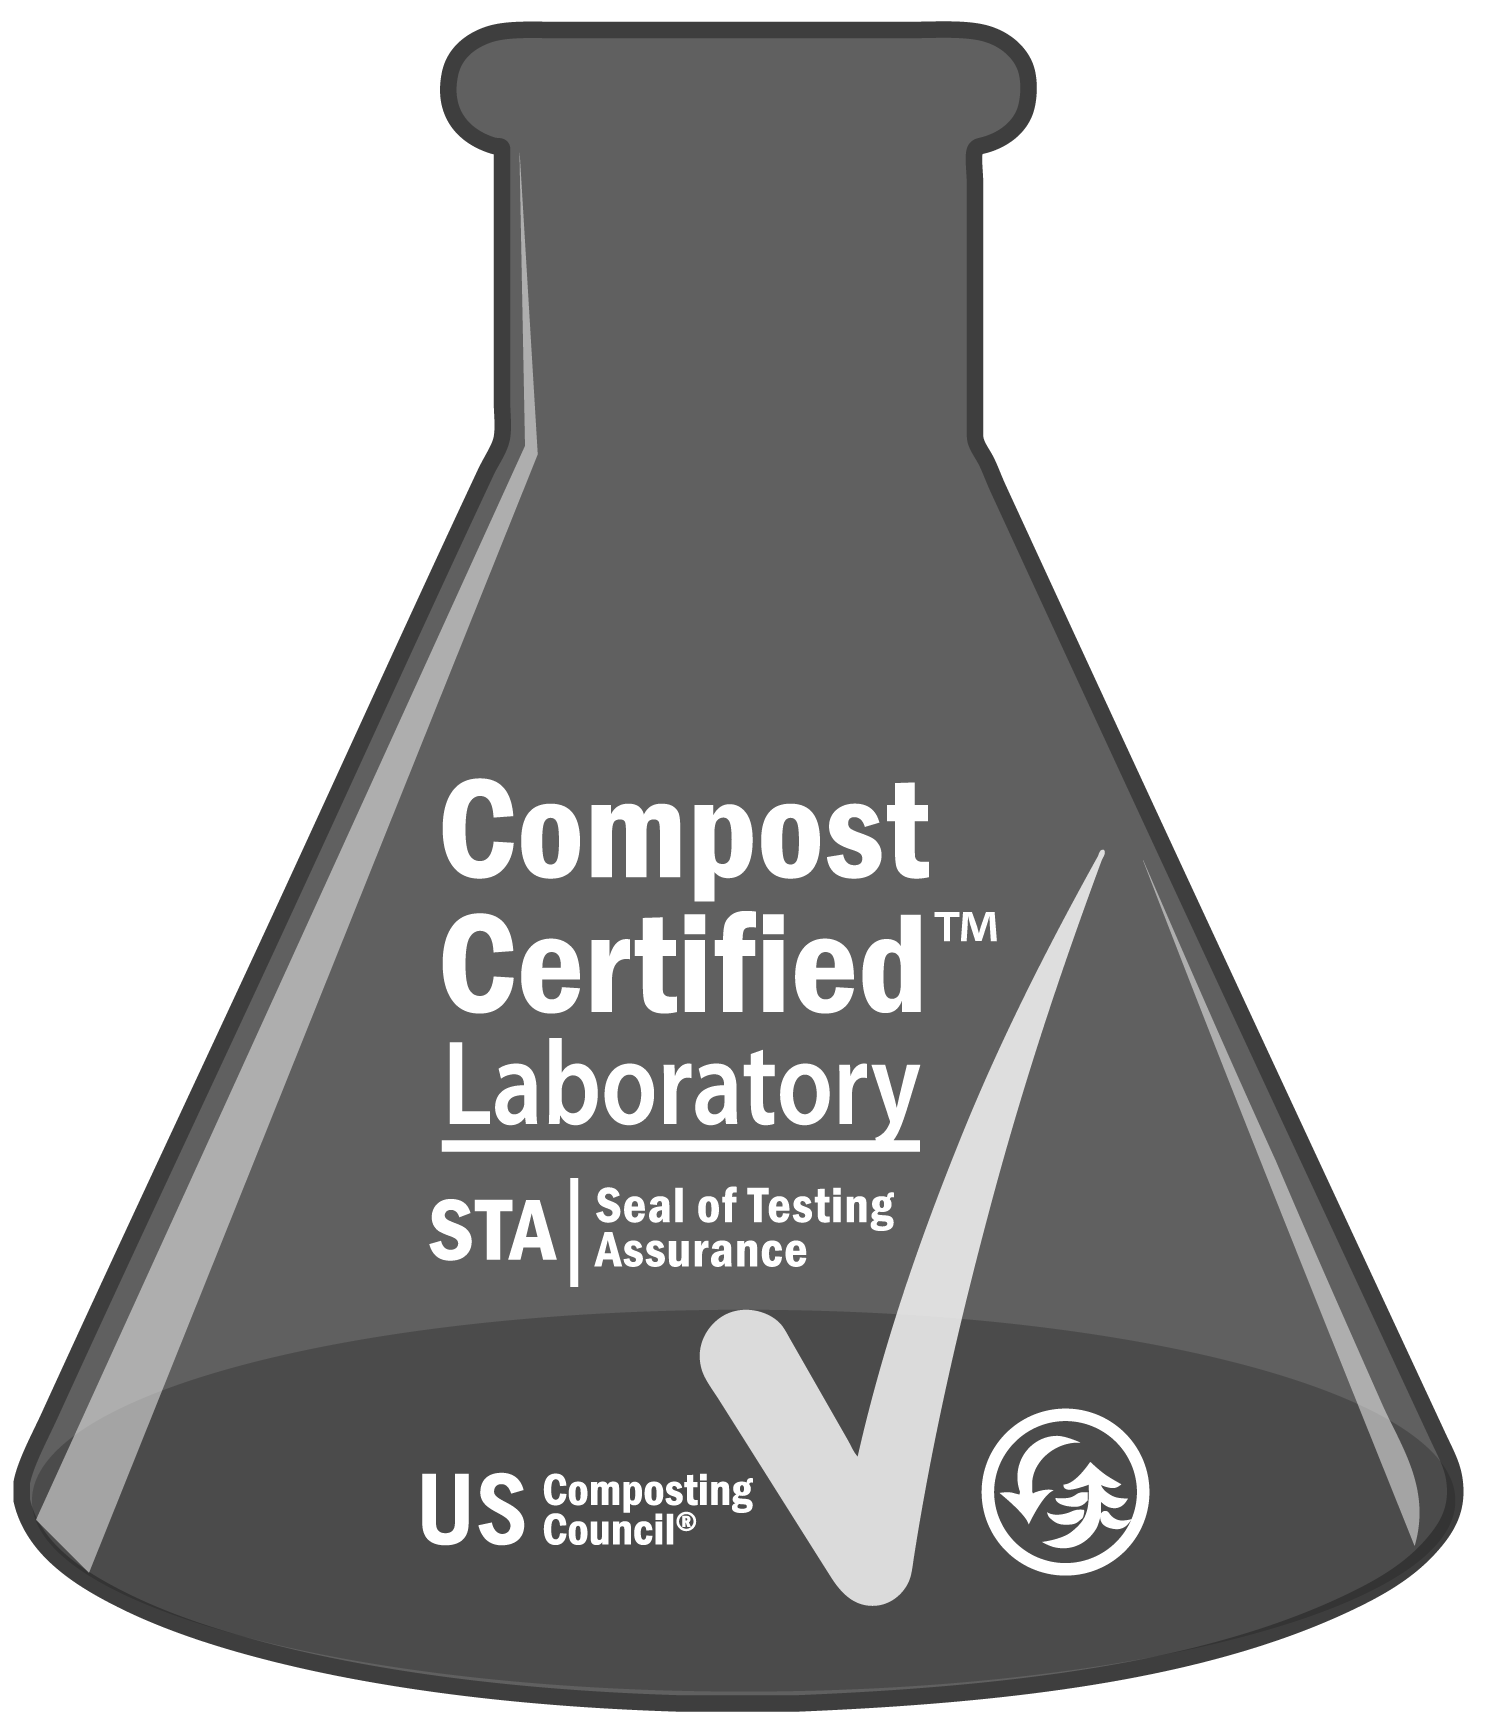 Compost Certified Laboratory